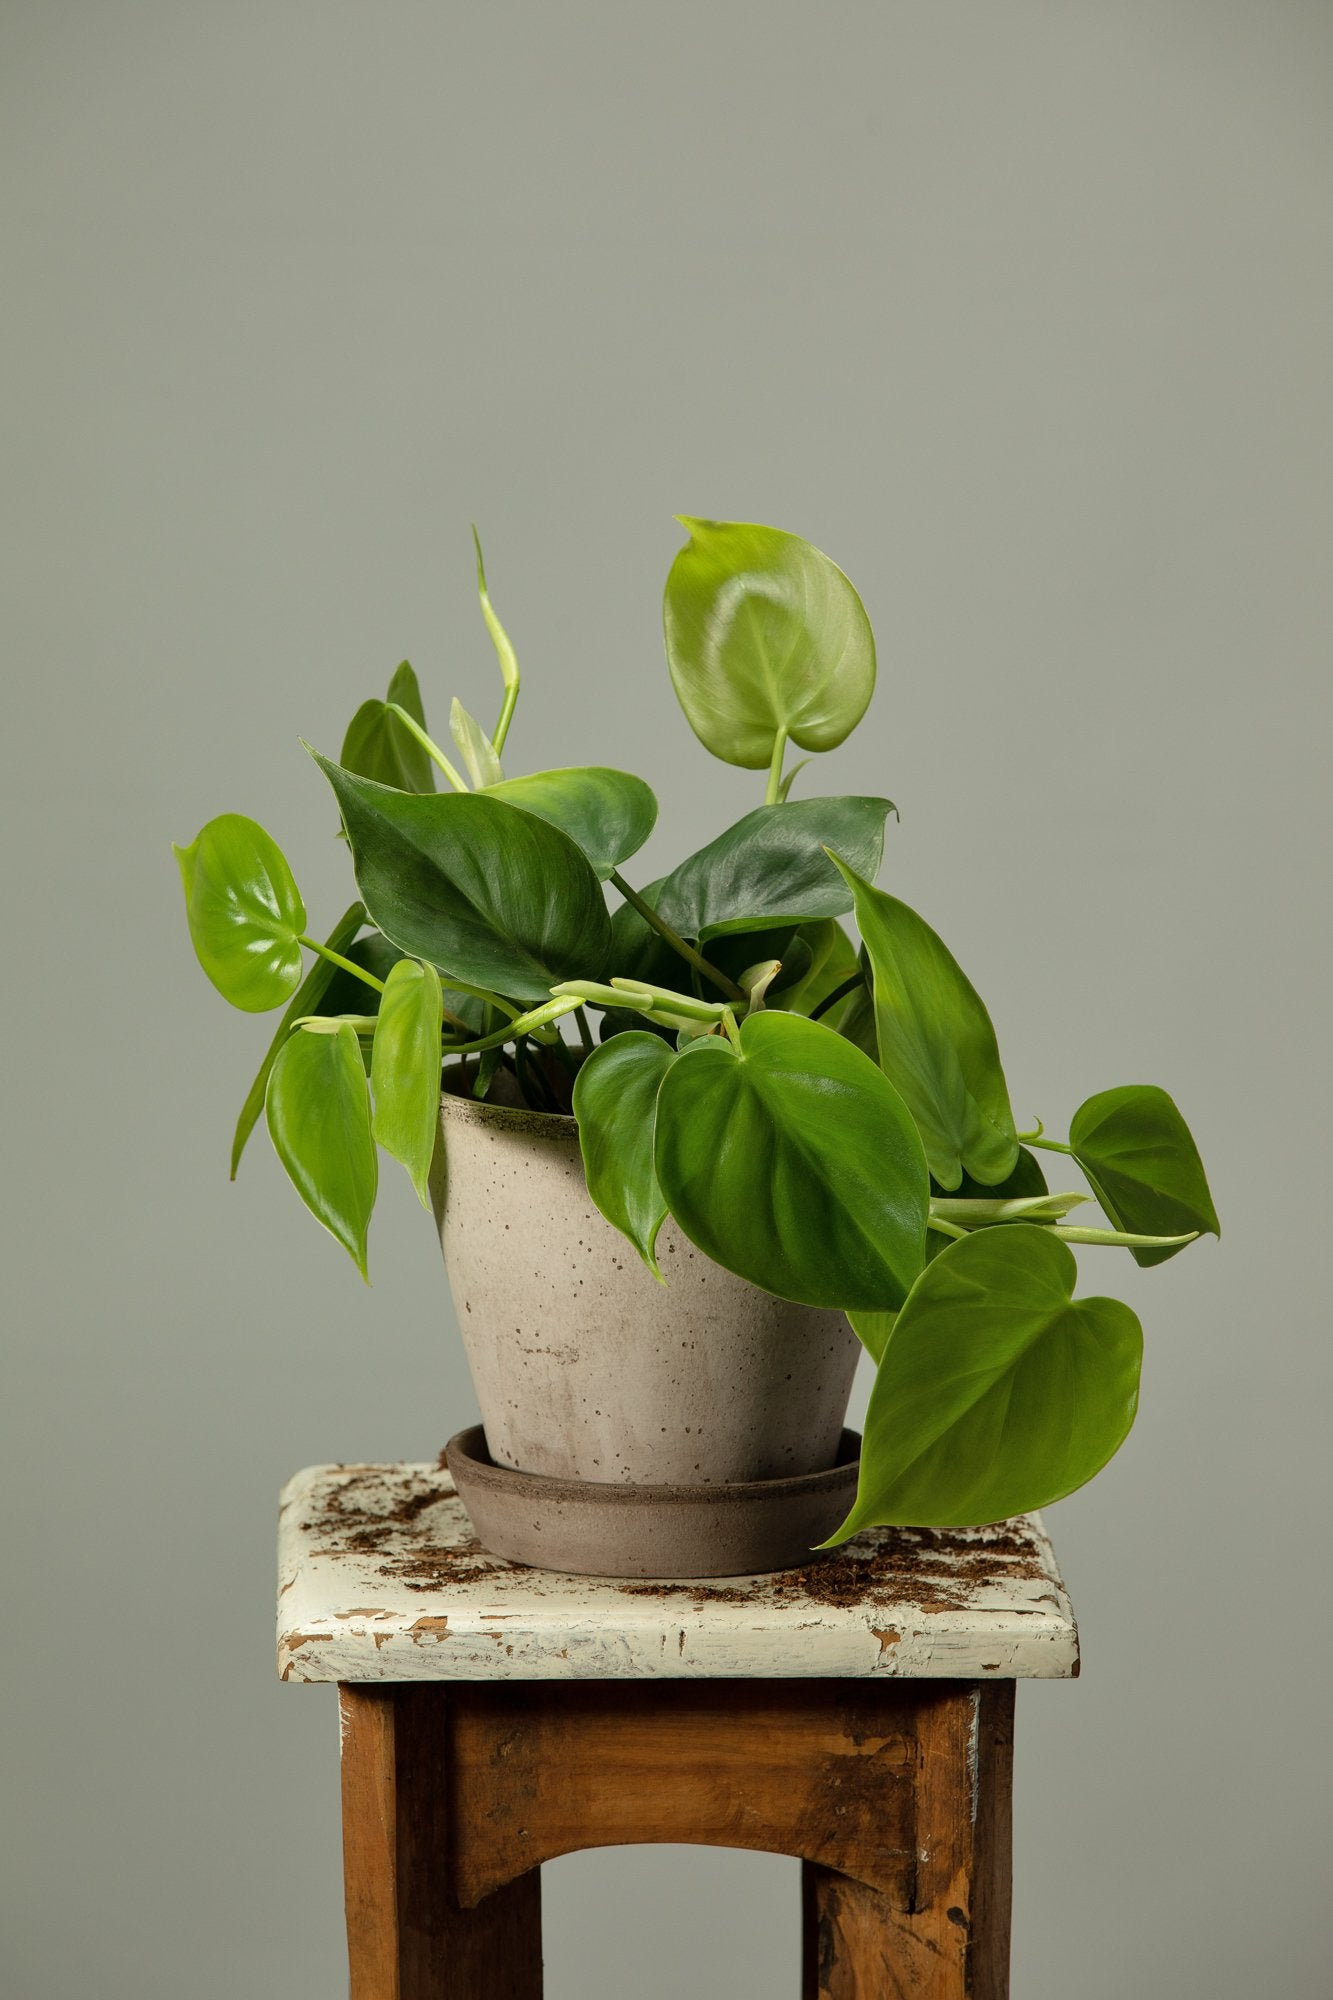 The Heartleaf Philodendron office plant repotted in a Berg's Julie Nordic Grey handmade terracotta houseplant pot.